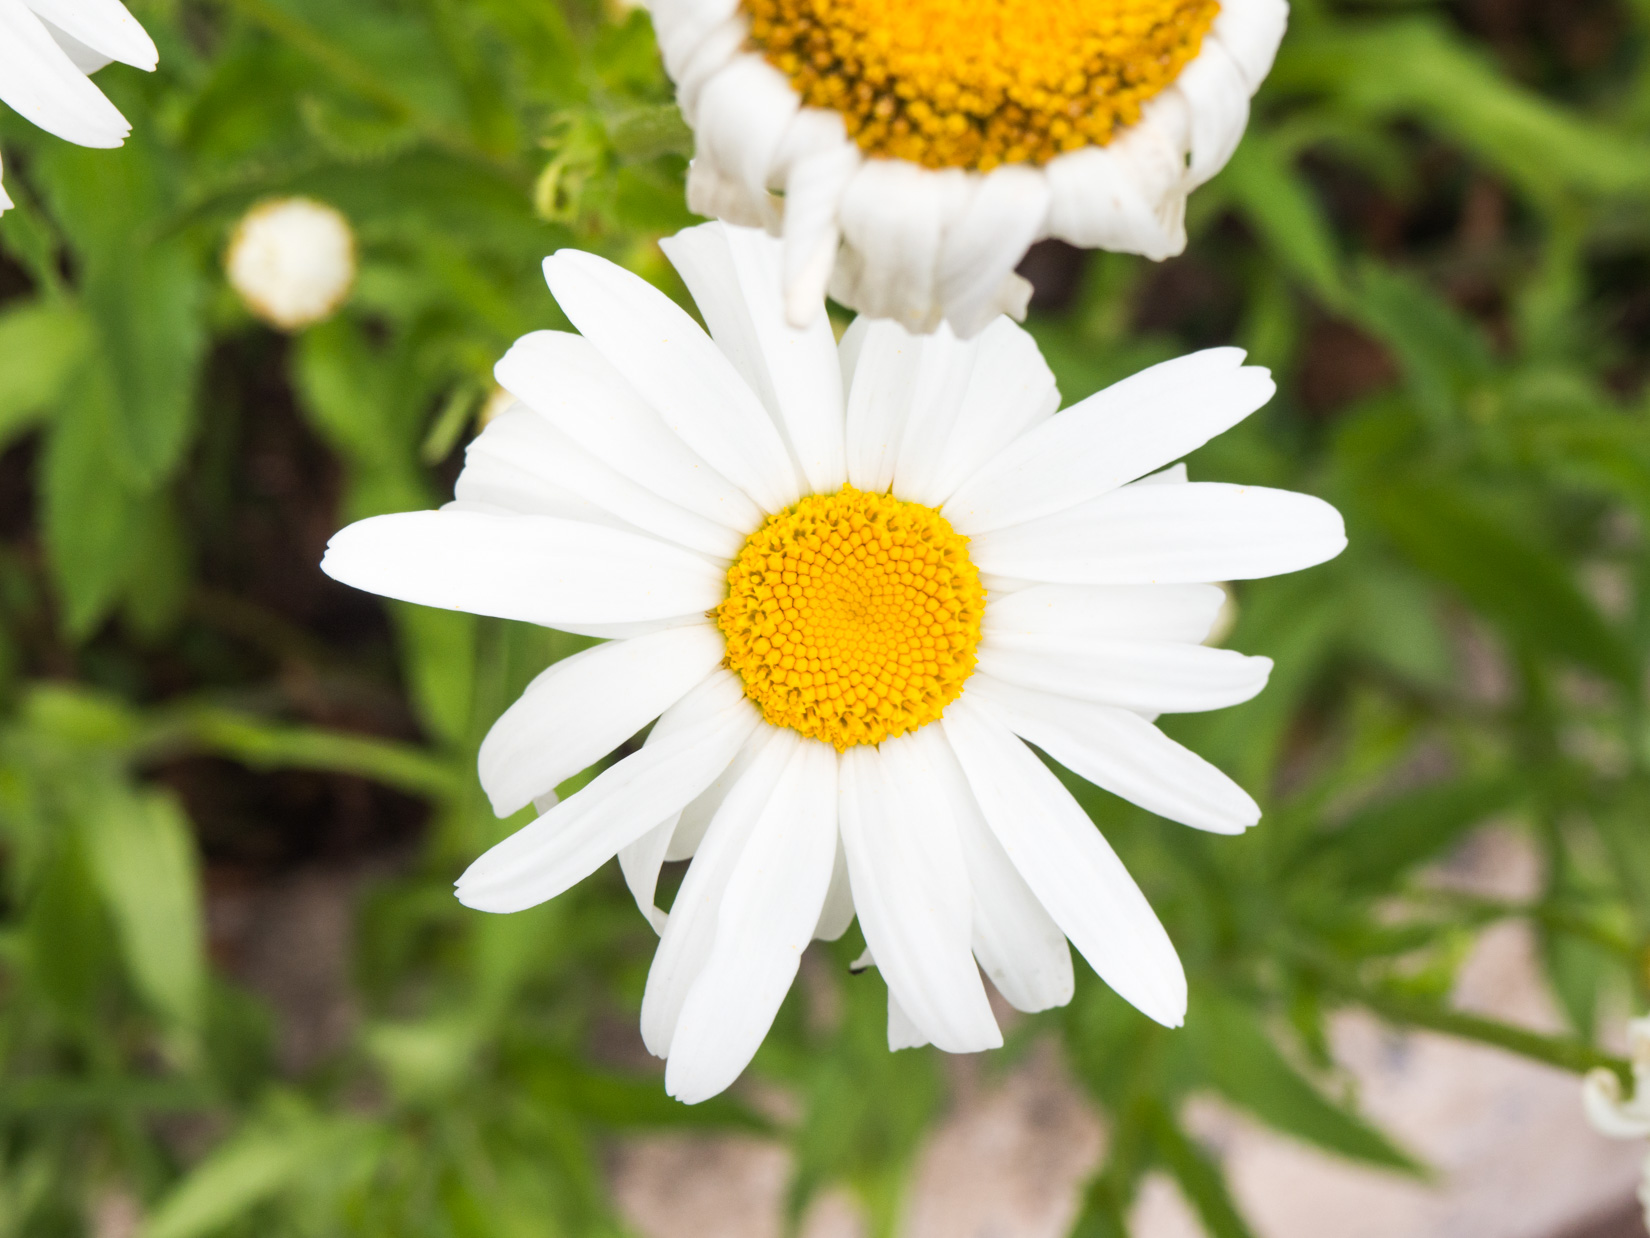 White and Yellow Flower in Garden